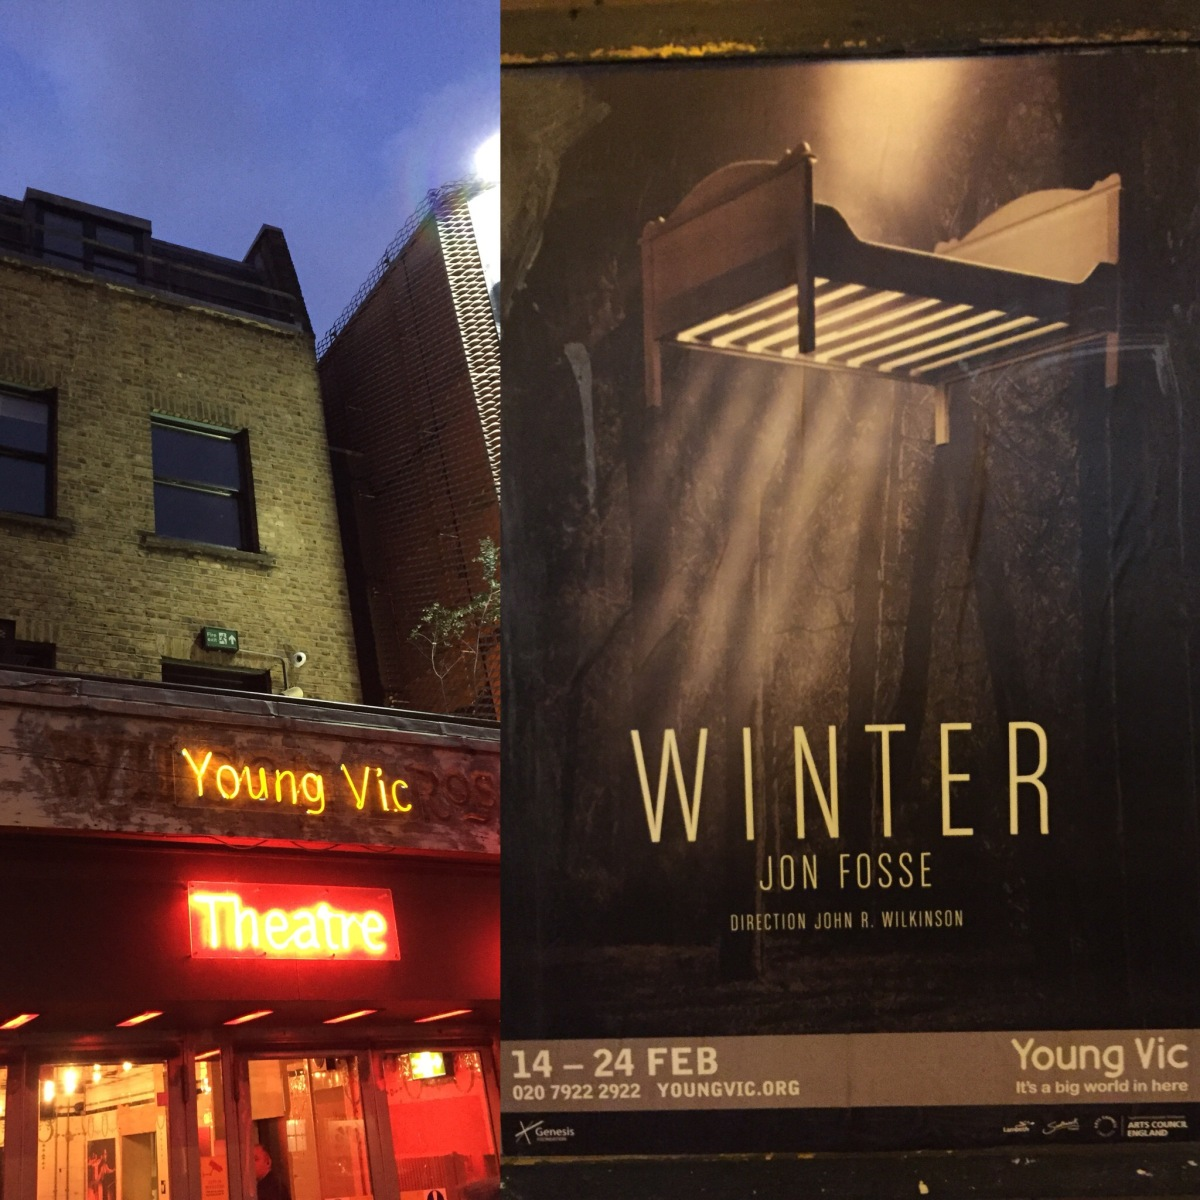 Winter at the Young Vic